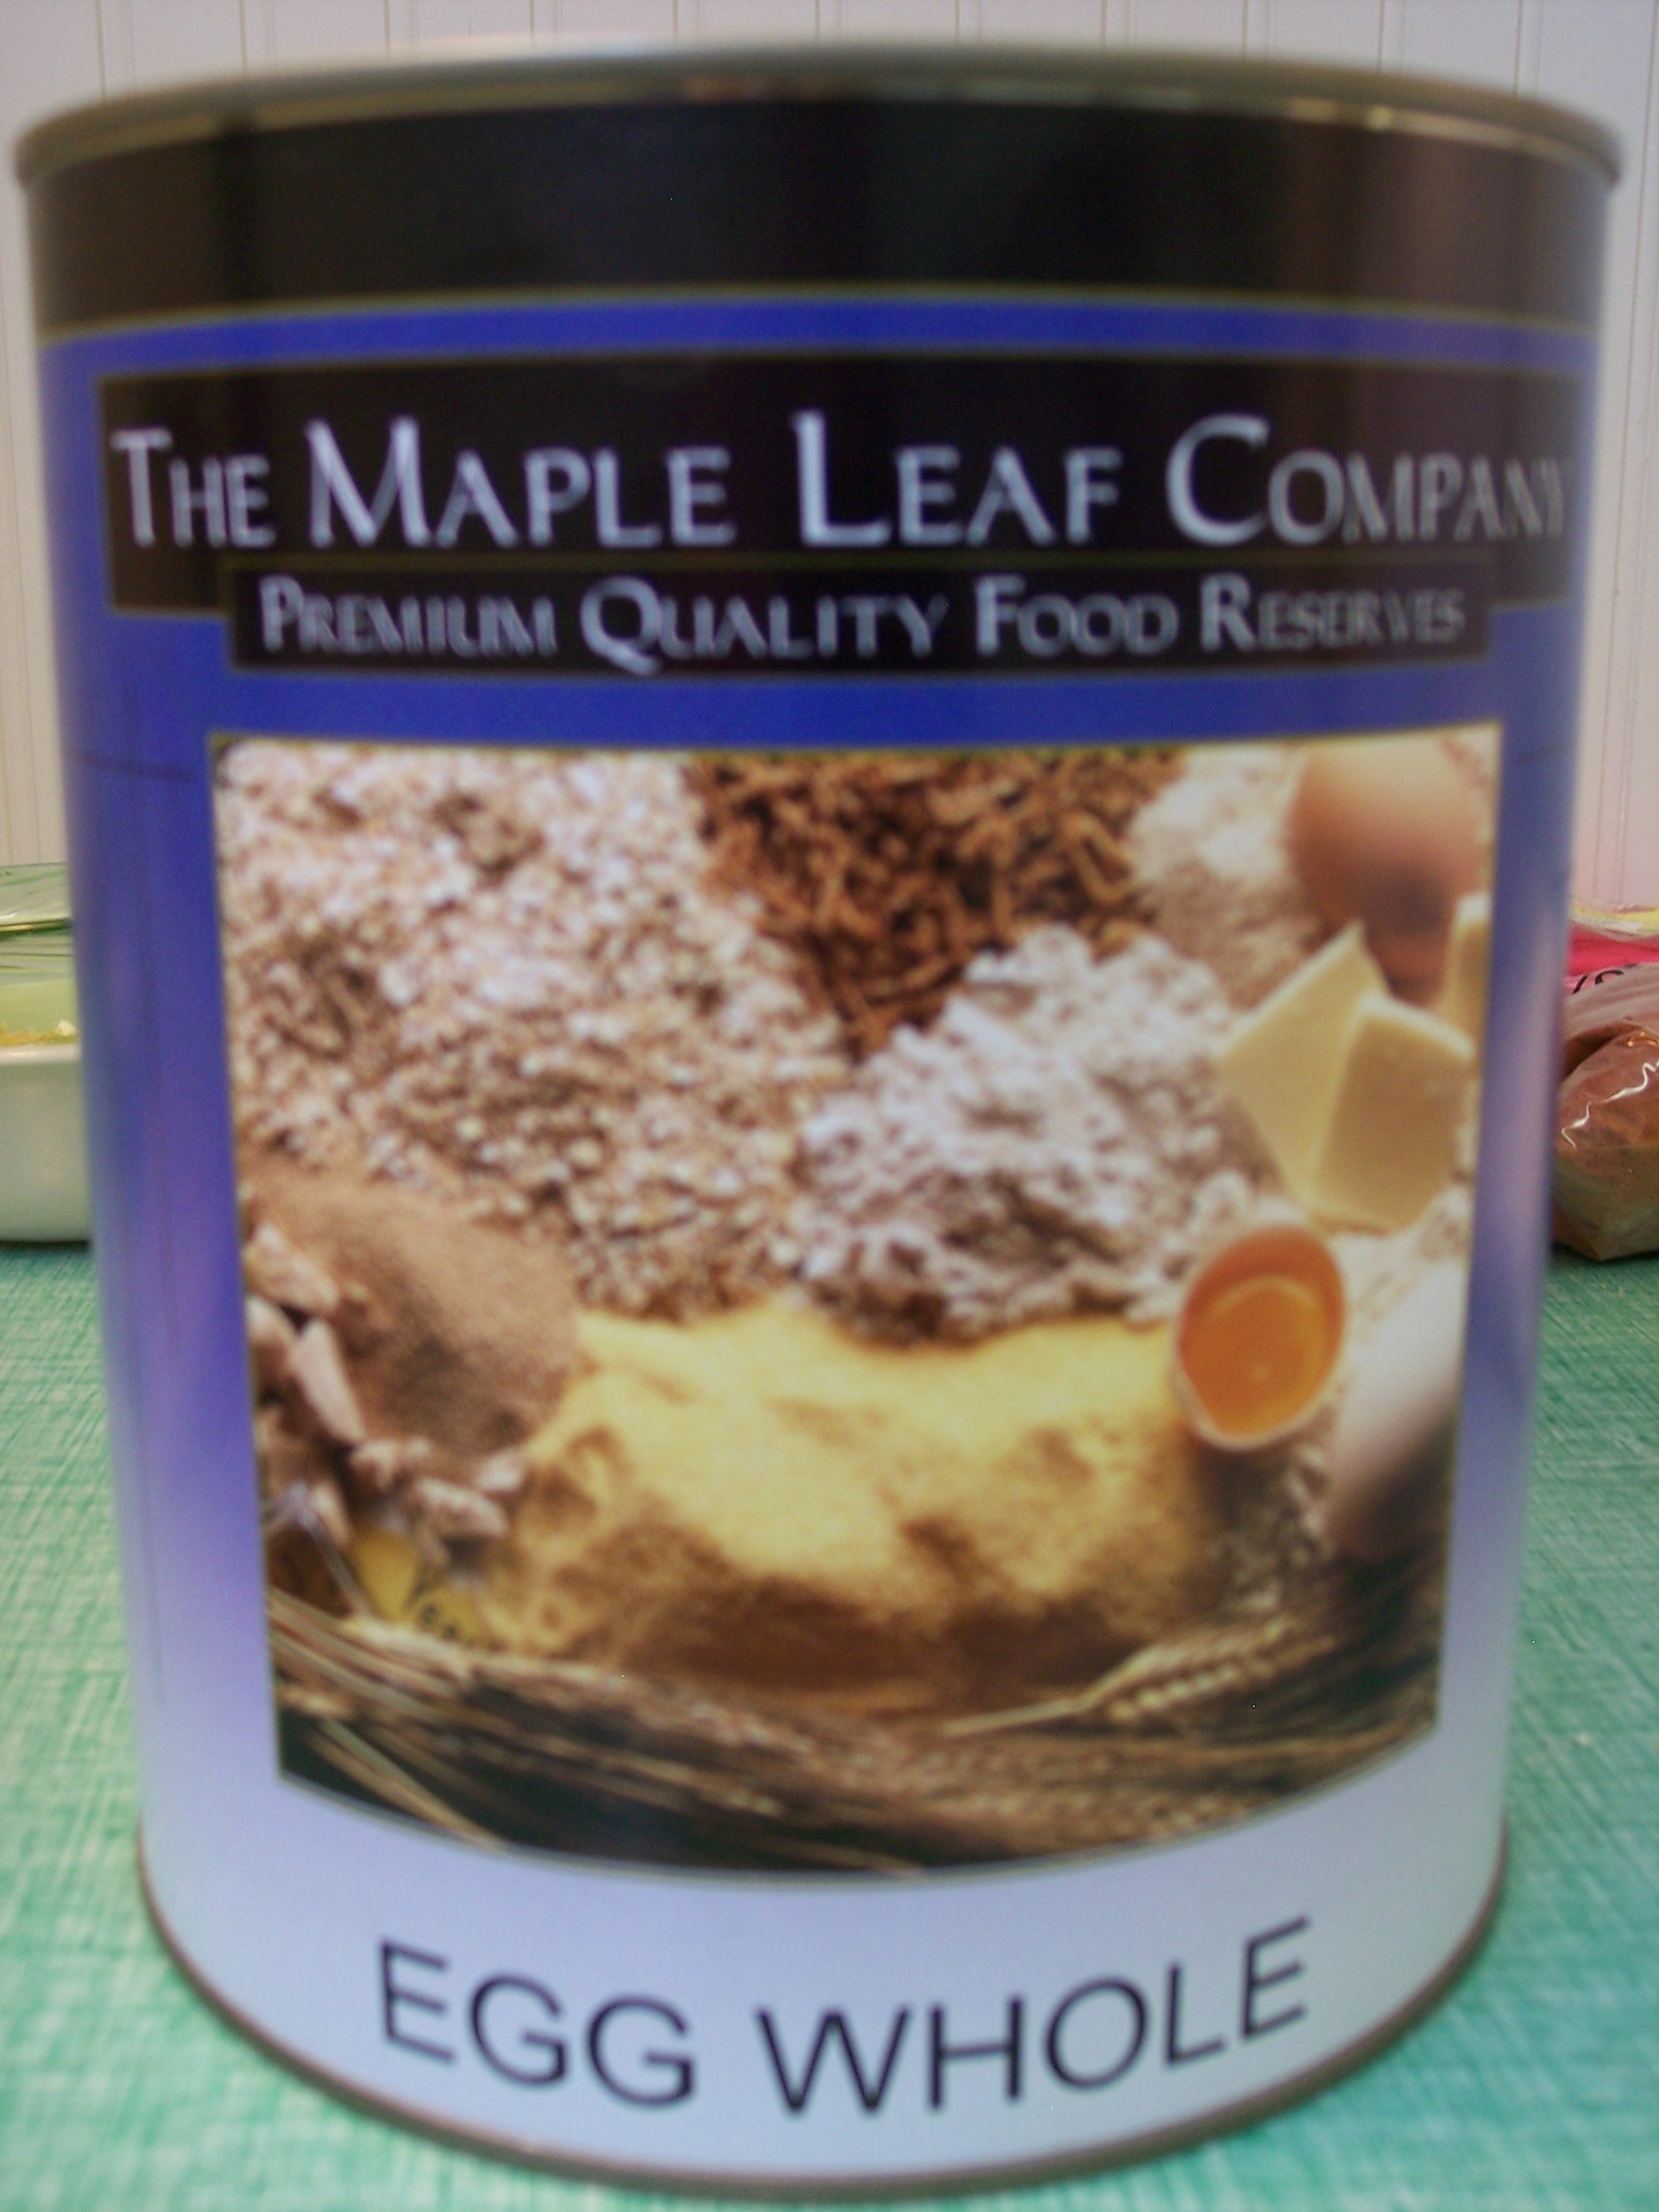 Egg Powder Freeze Dried. This product is in stock now and can be ordered.